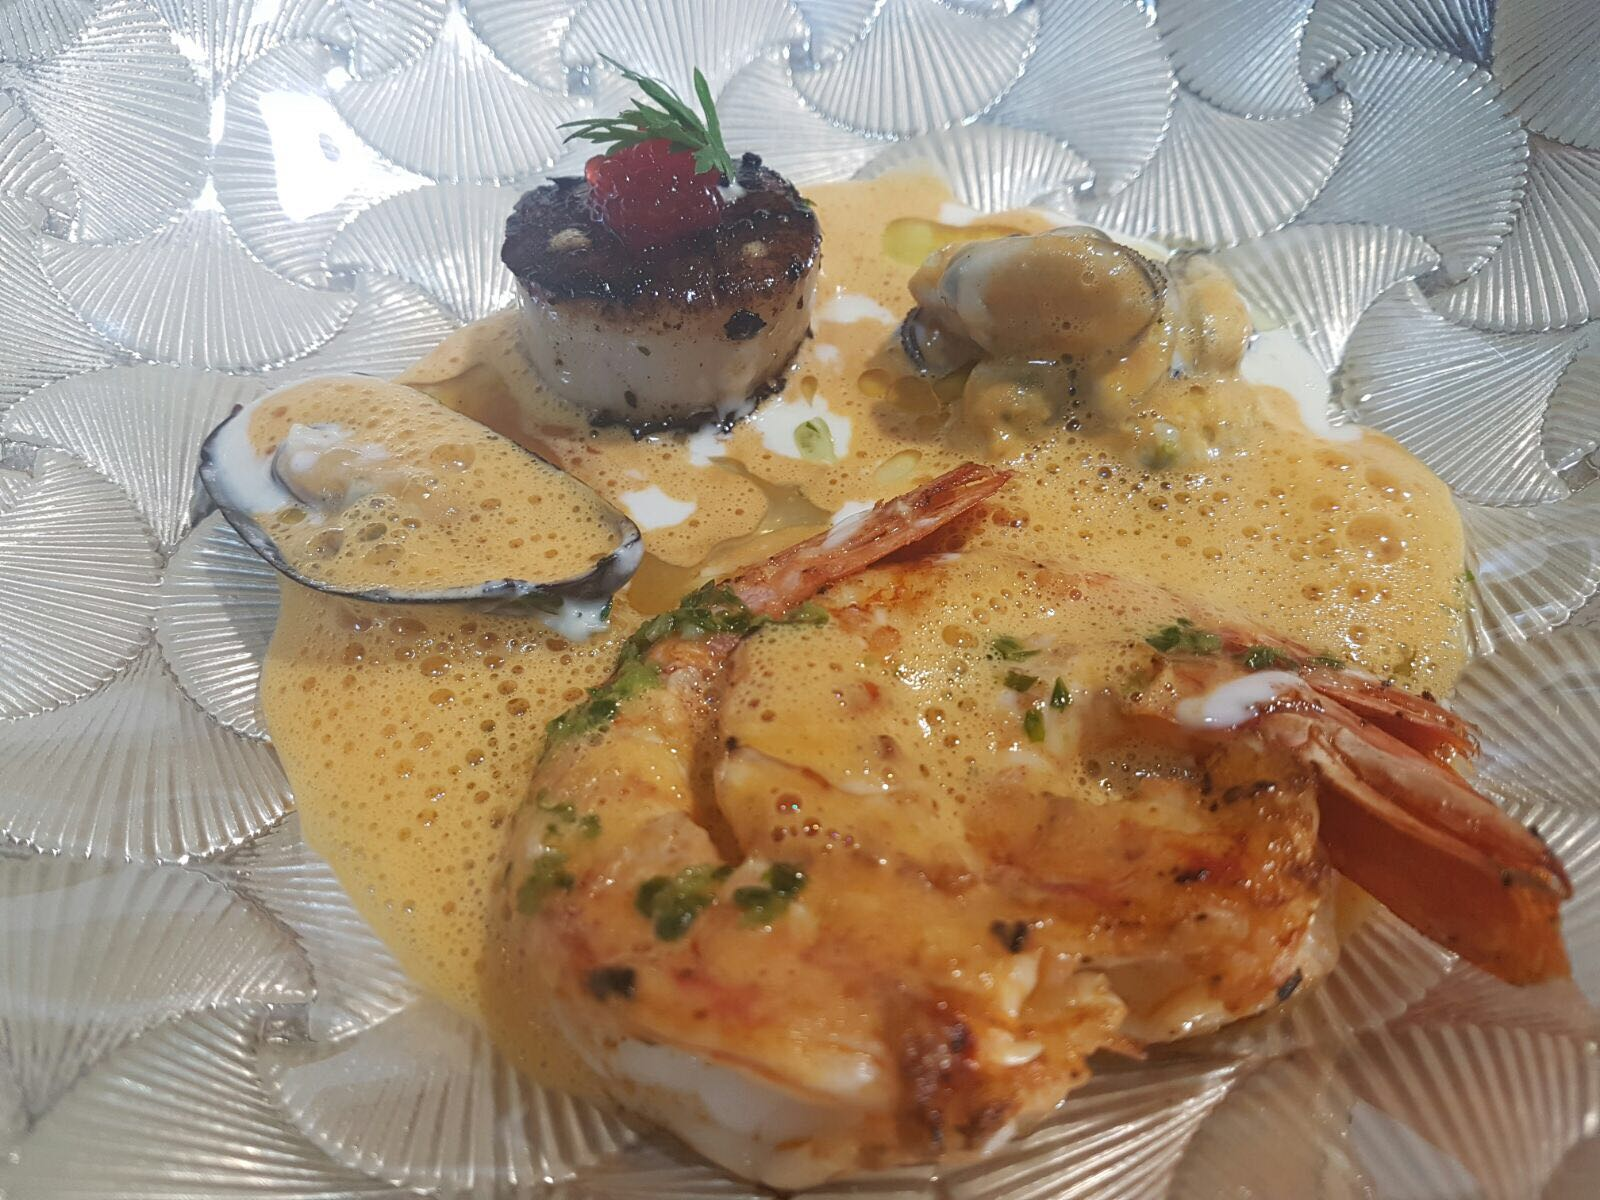 Deconstructed bouillabaisse, hand dived scallop, mussels, gambas & lobster veloute